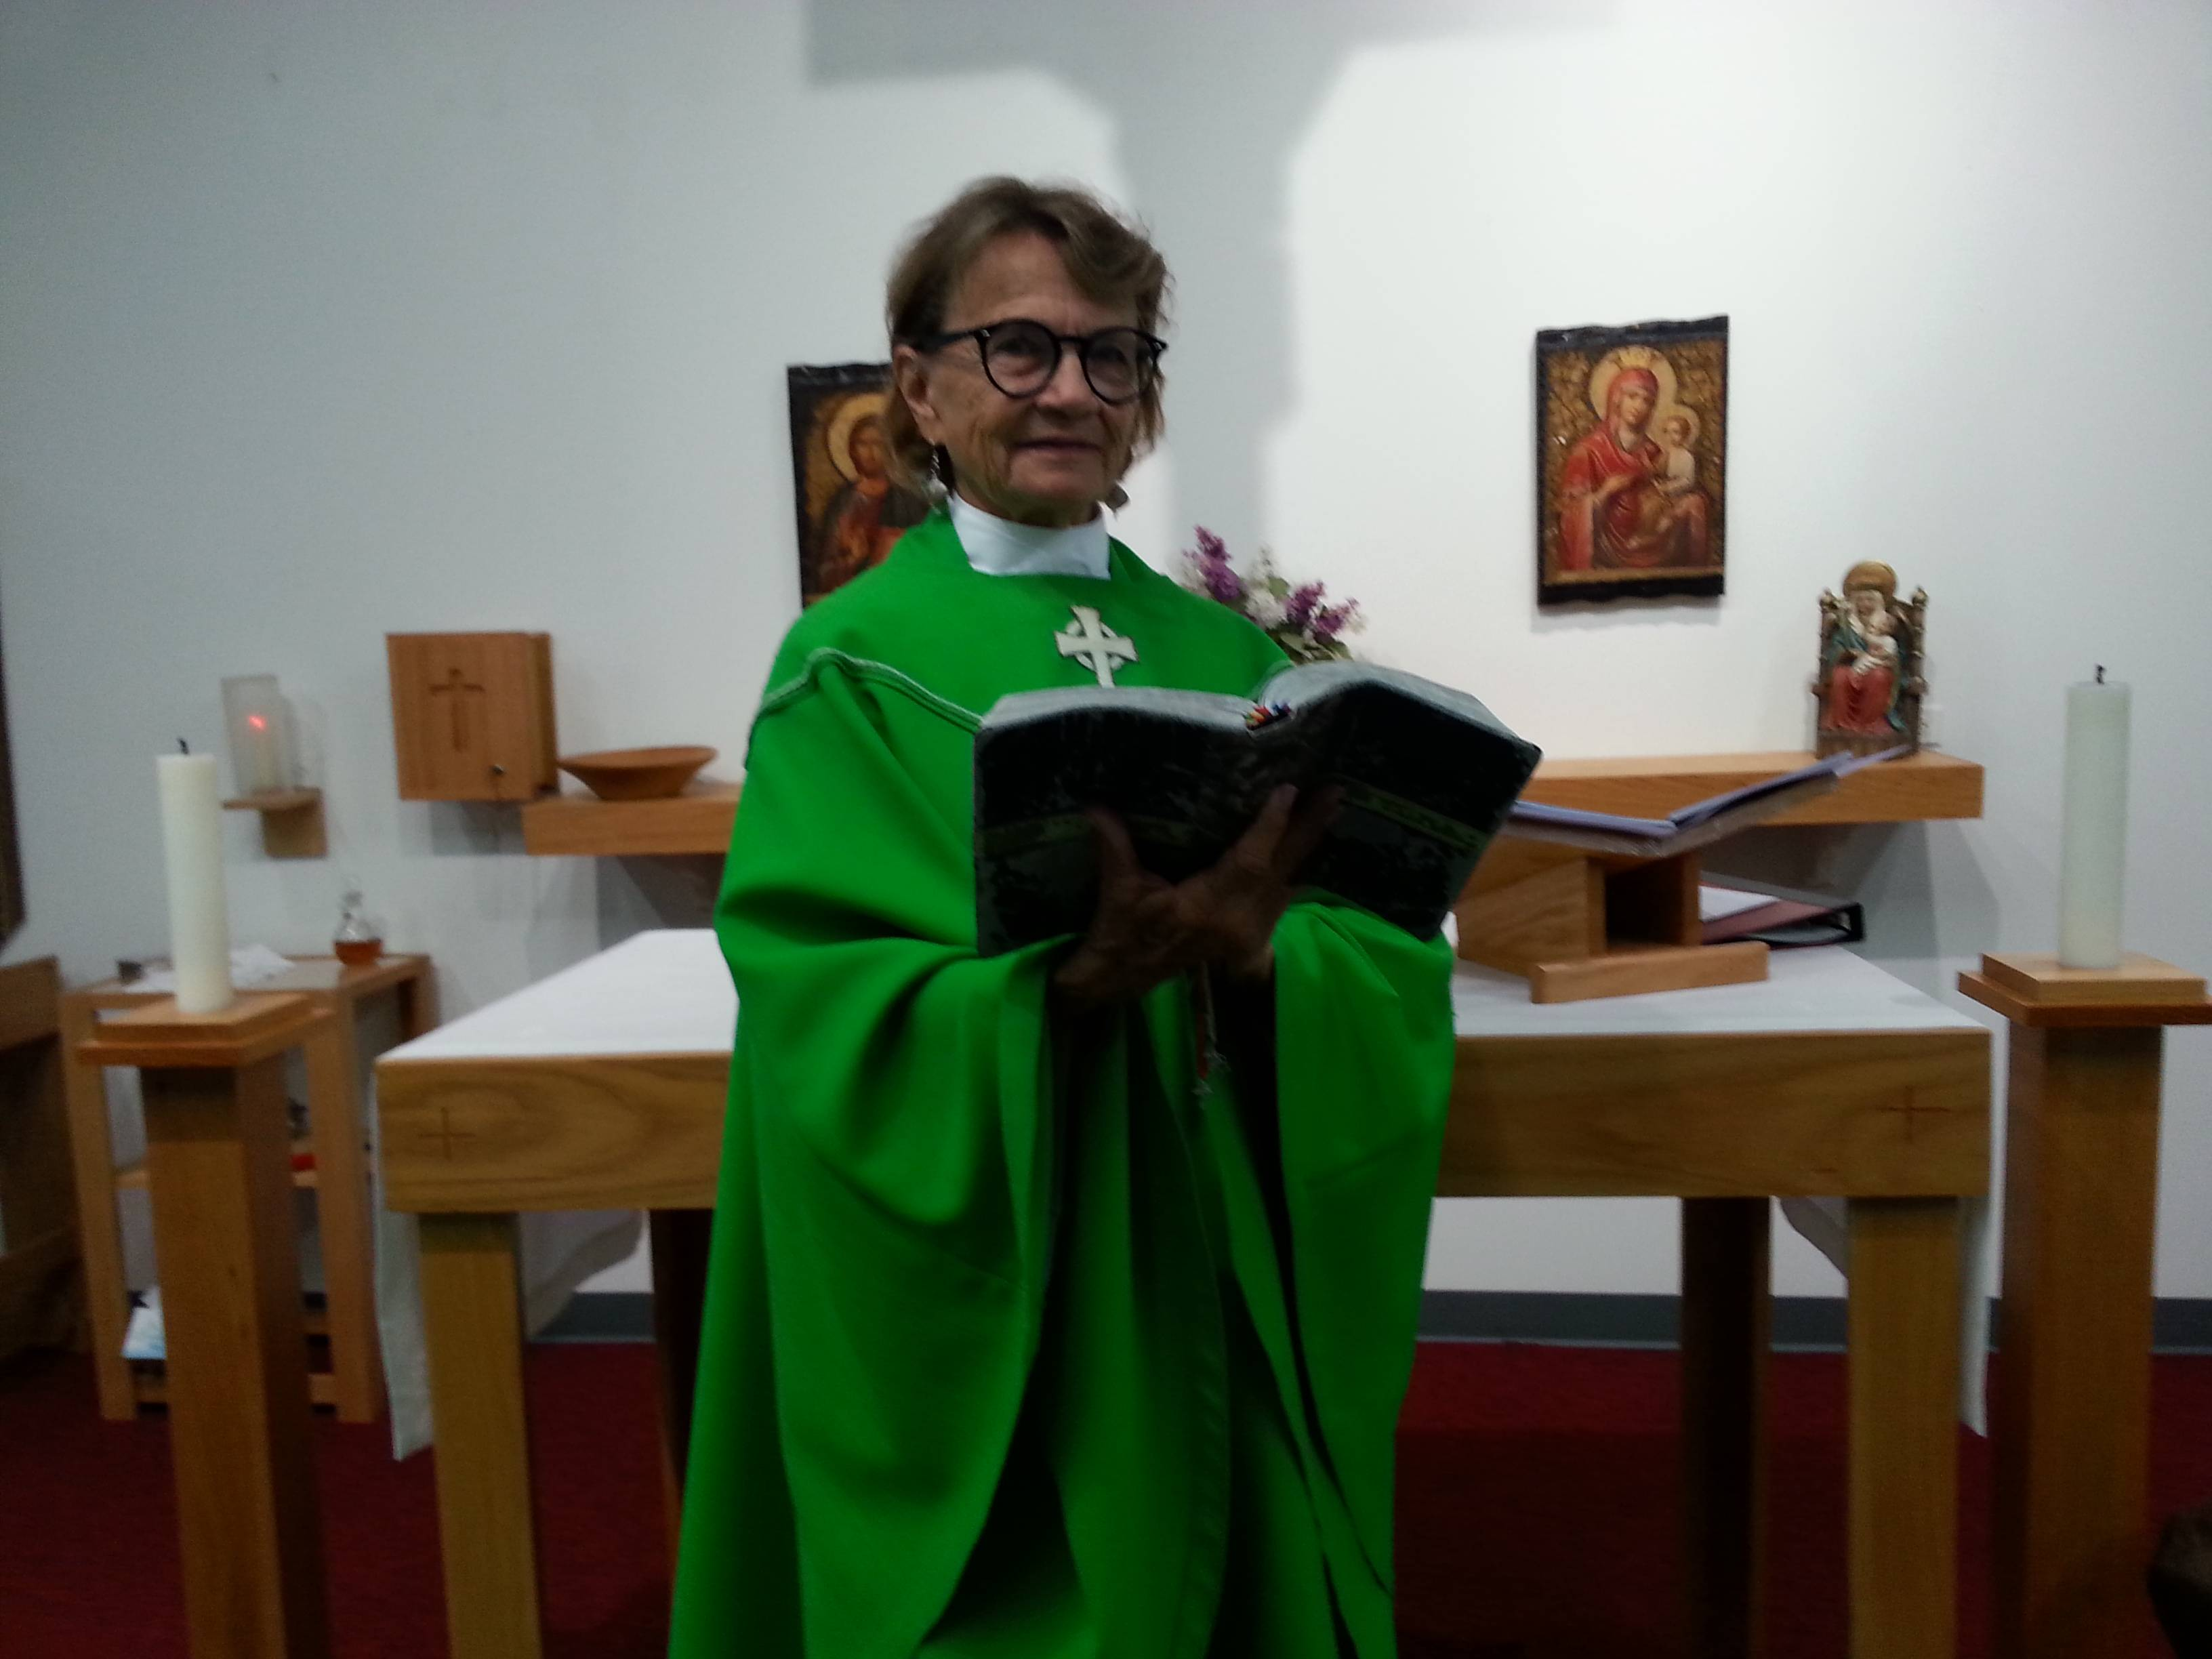 The Rev. Diana M. Gorgos, who has spent 14 years as a missionary minister in Kenya, is the visiting priest for the summer at Holy Cross Anglican Church in Lake Villa.